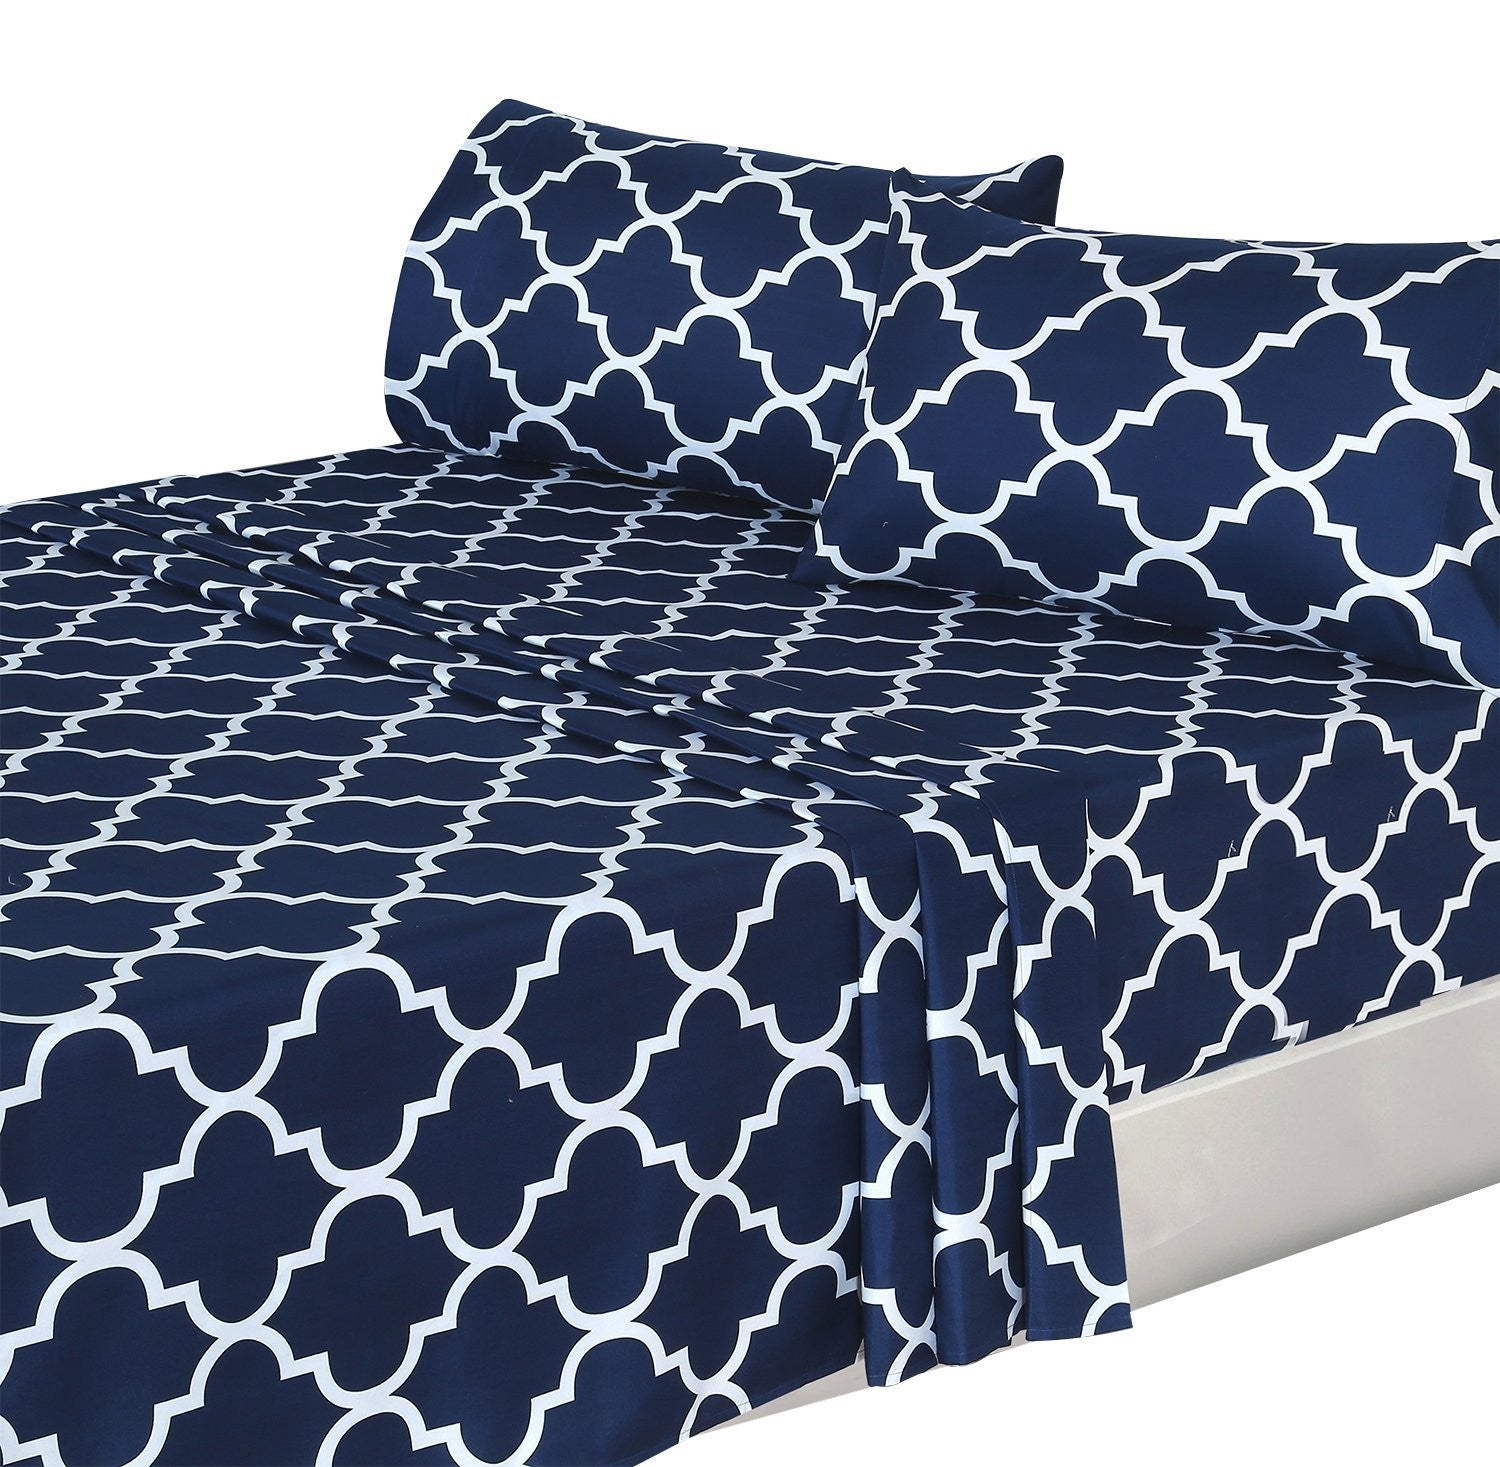 Printed Bed Sheet Set (Navy Blue)